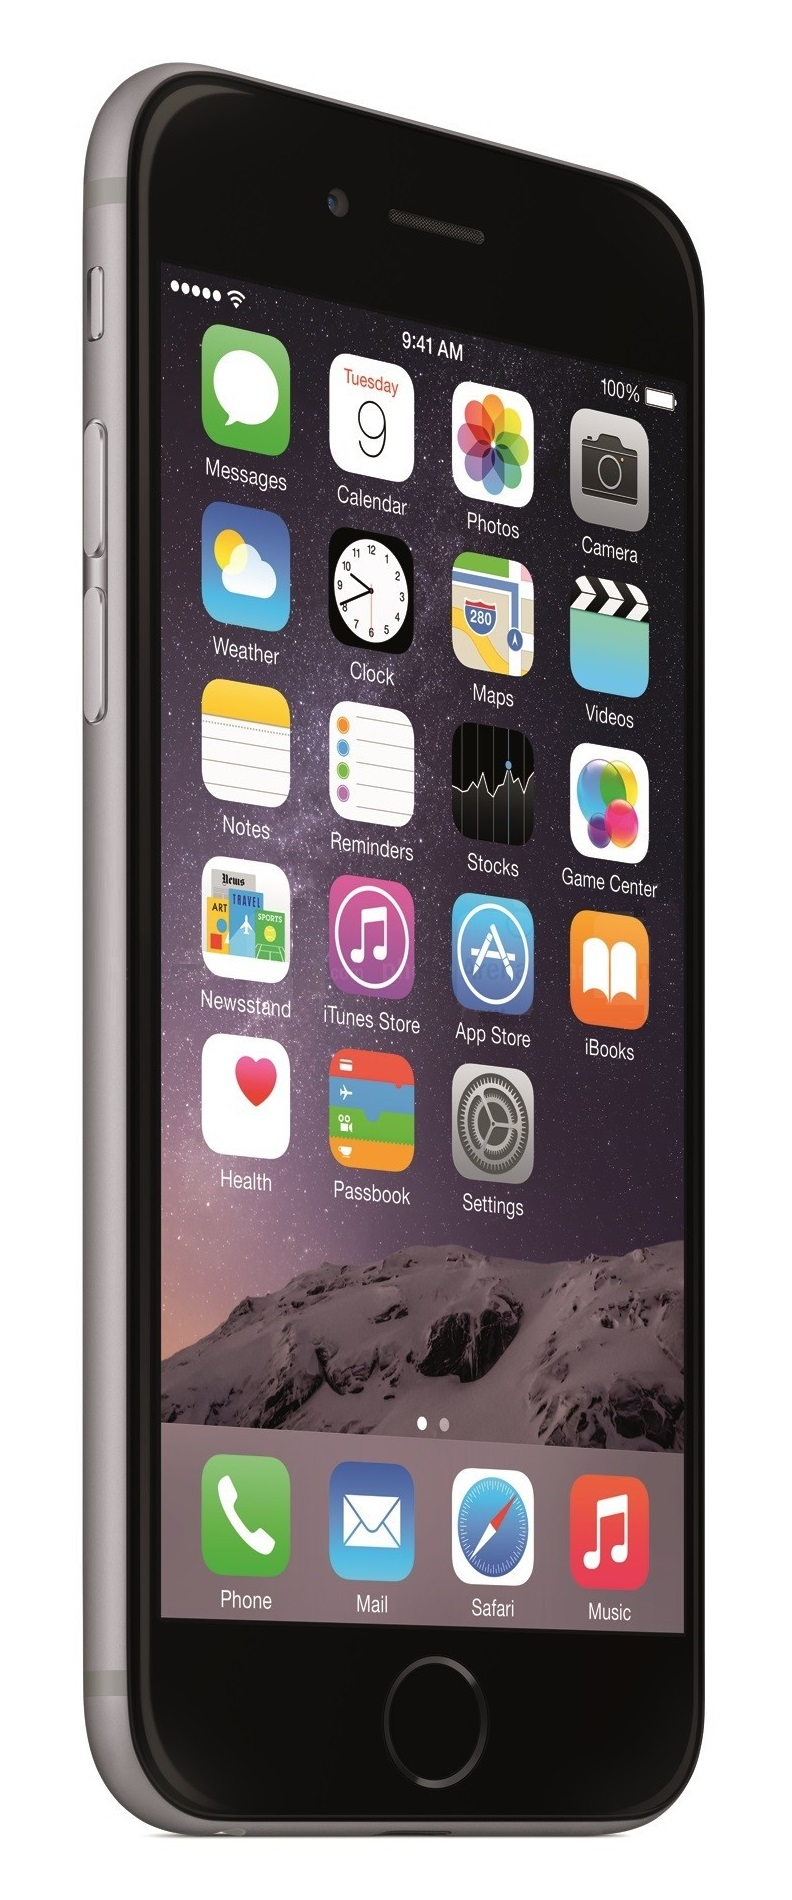 apple iphone 6 128gb unlocked gsm 4g lte ios 8 dual core smartphone gold ebay. Black Bedroom Furniture Sets. Home Design Ideas